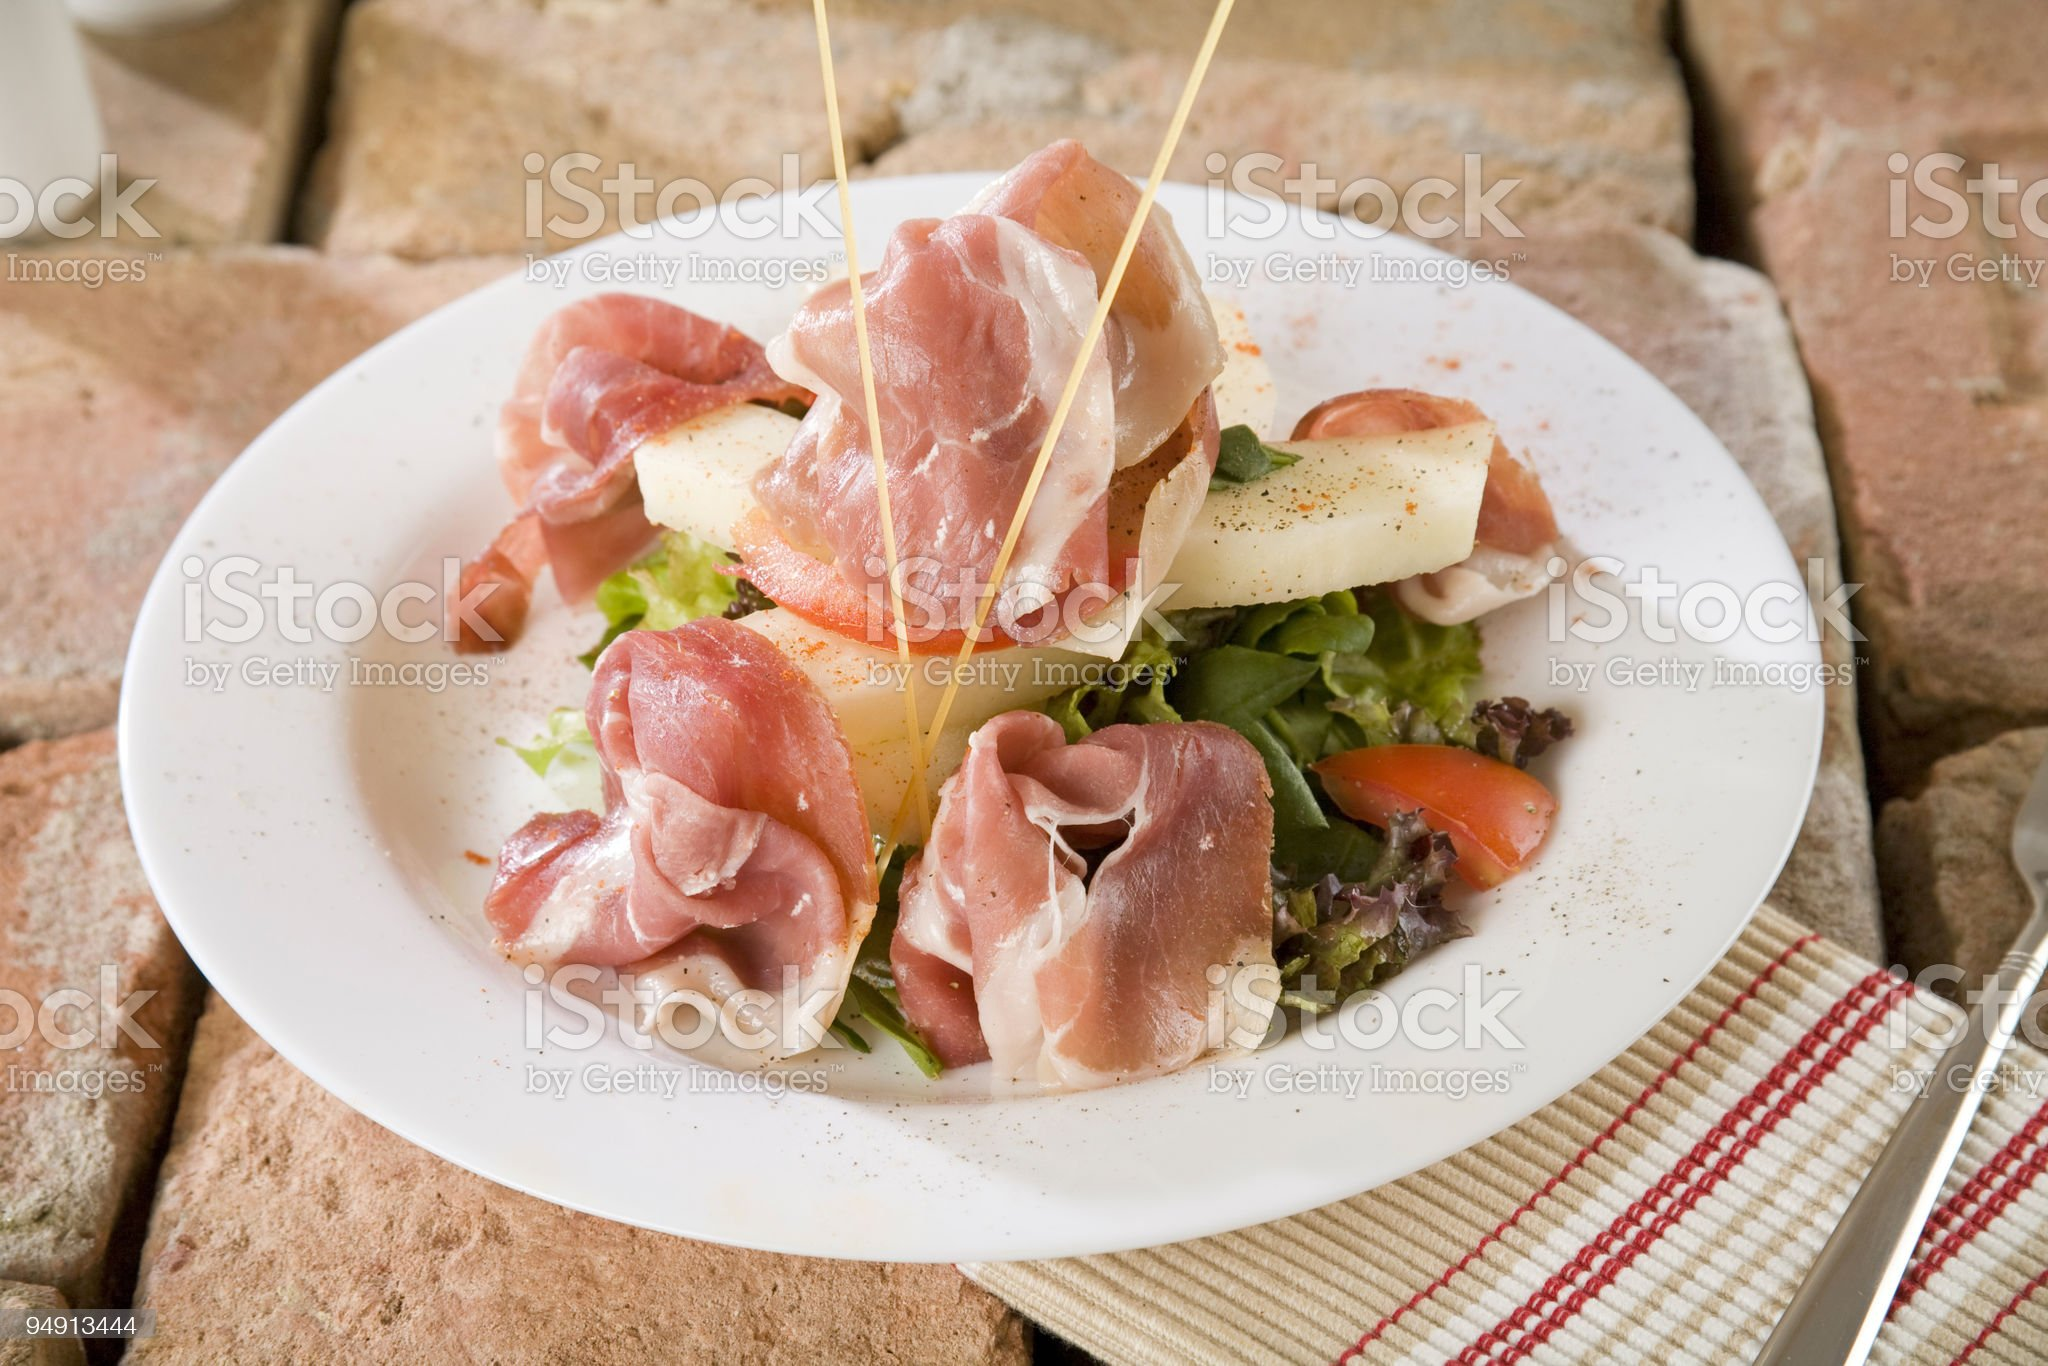 Prosciutto ham with salad royalty-free stock photo